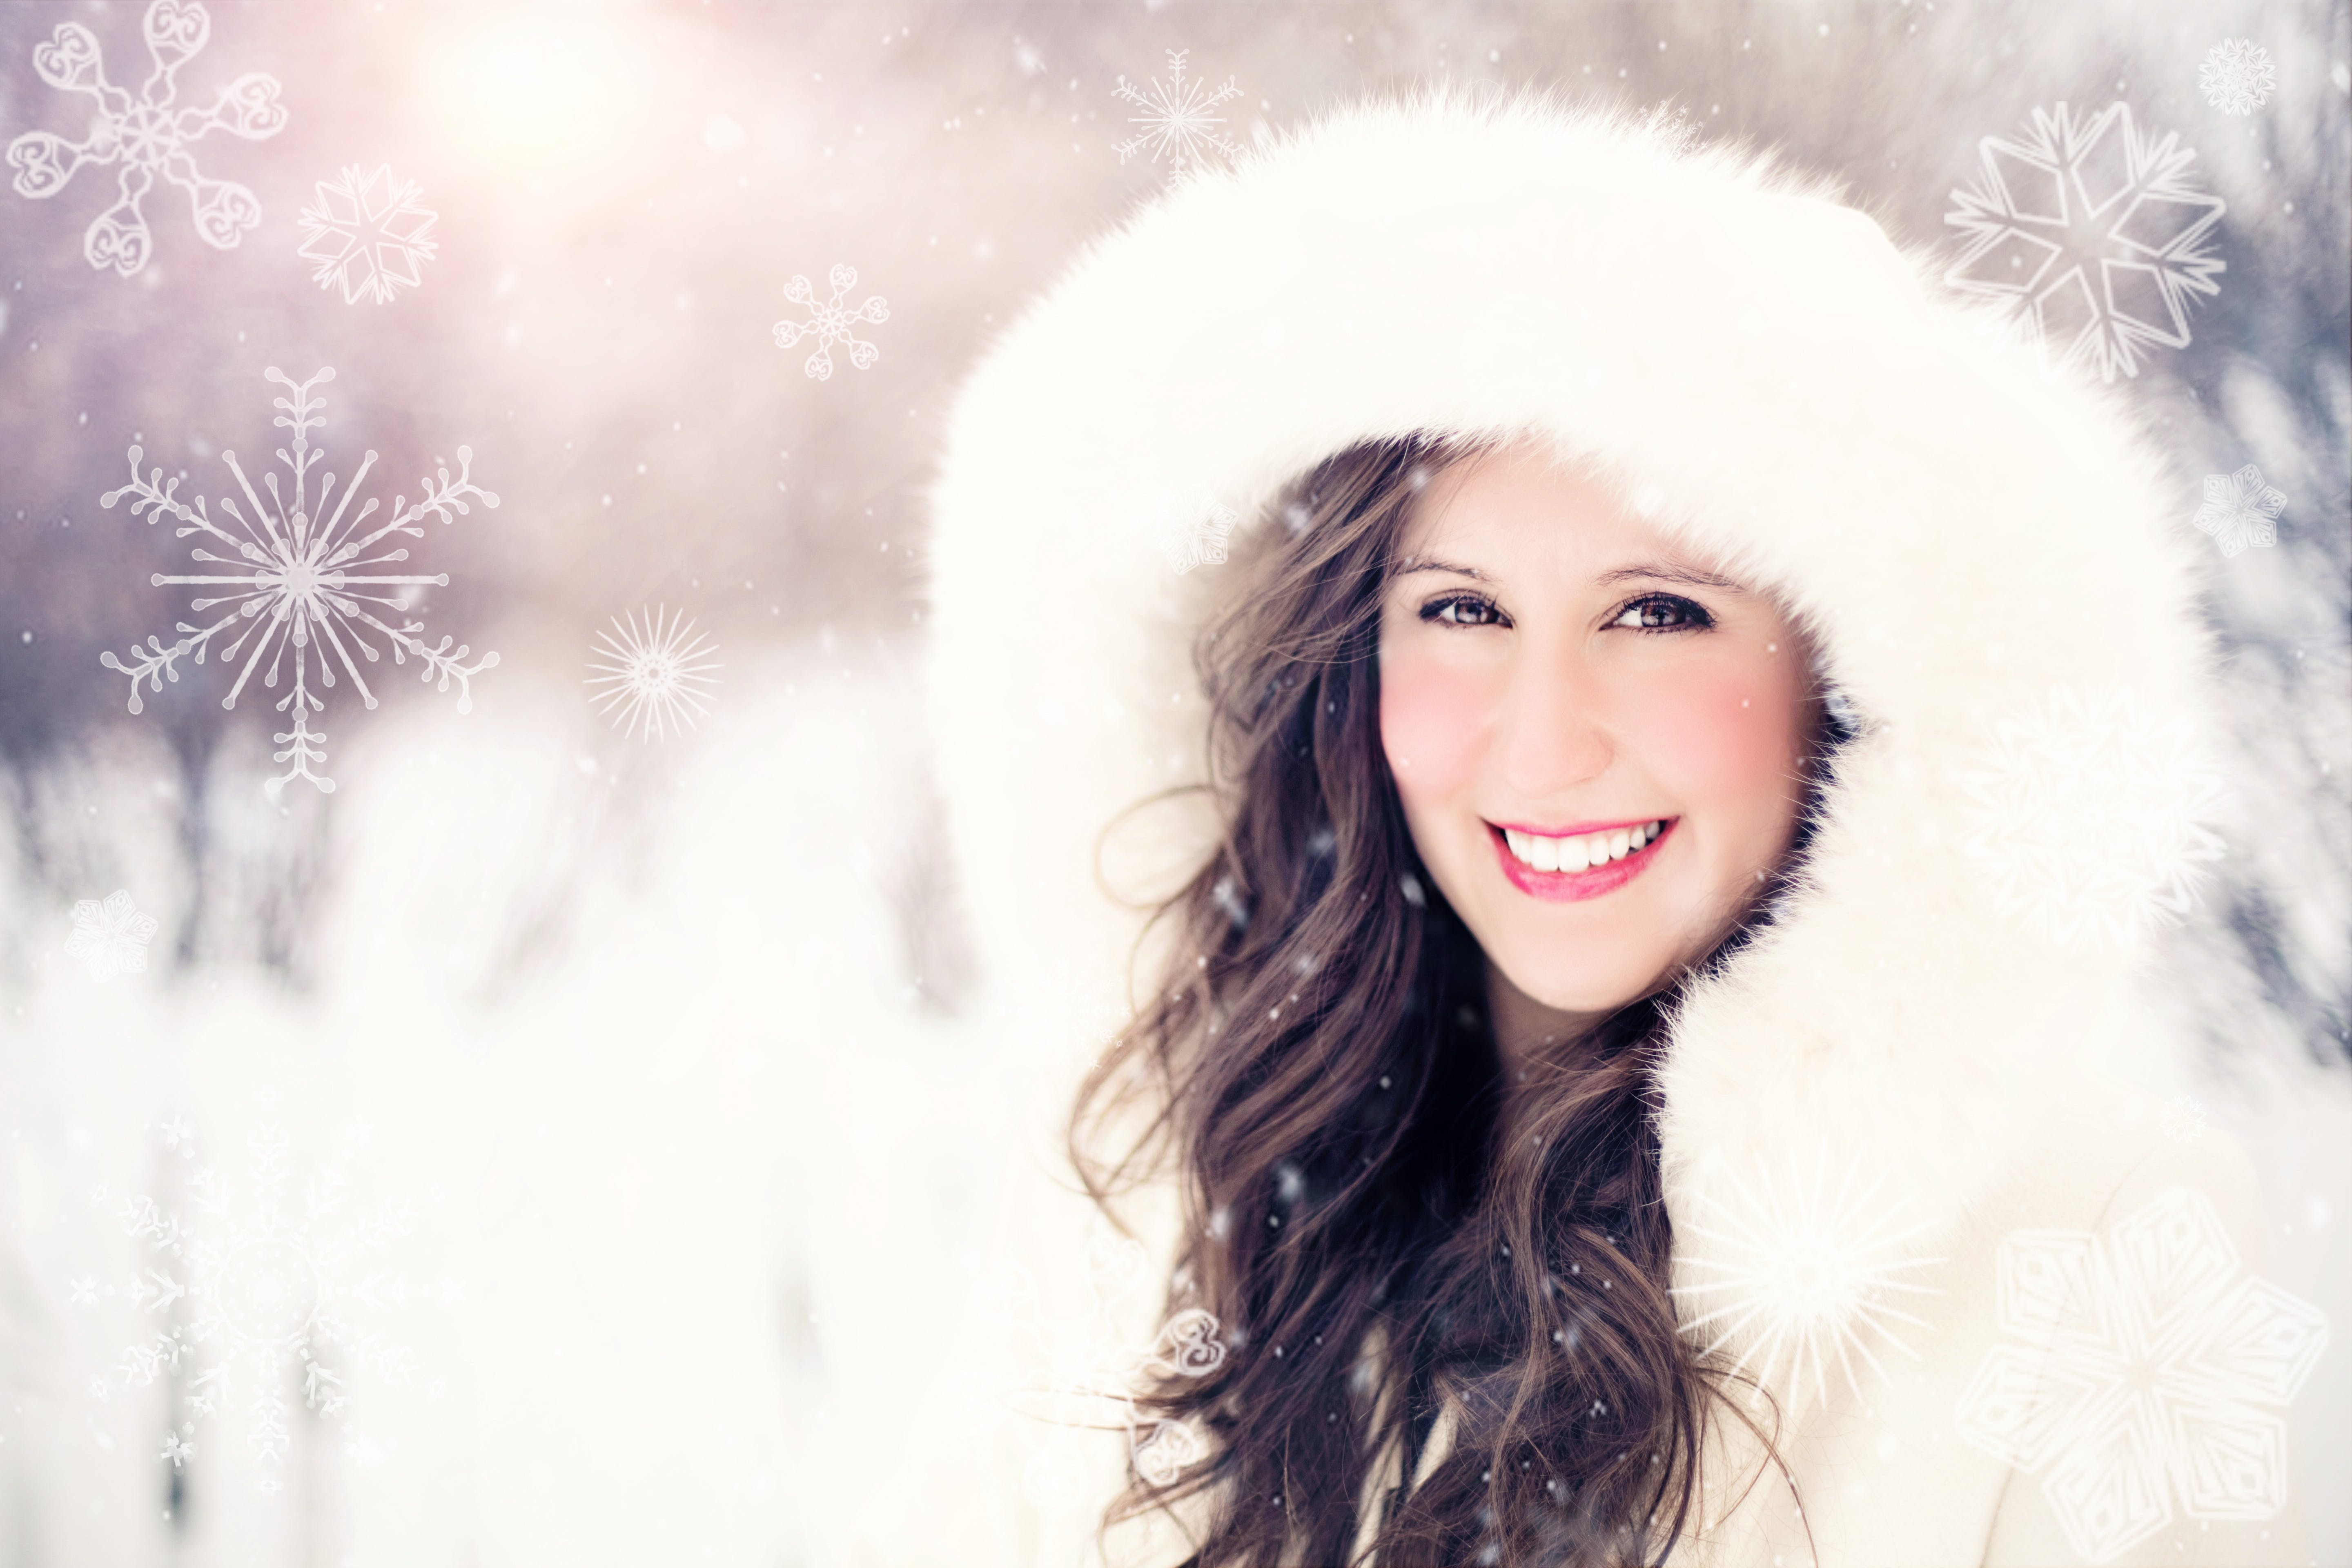 Free stock photo of cold, portrait, smiling, snow